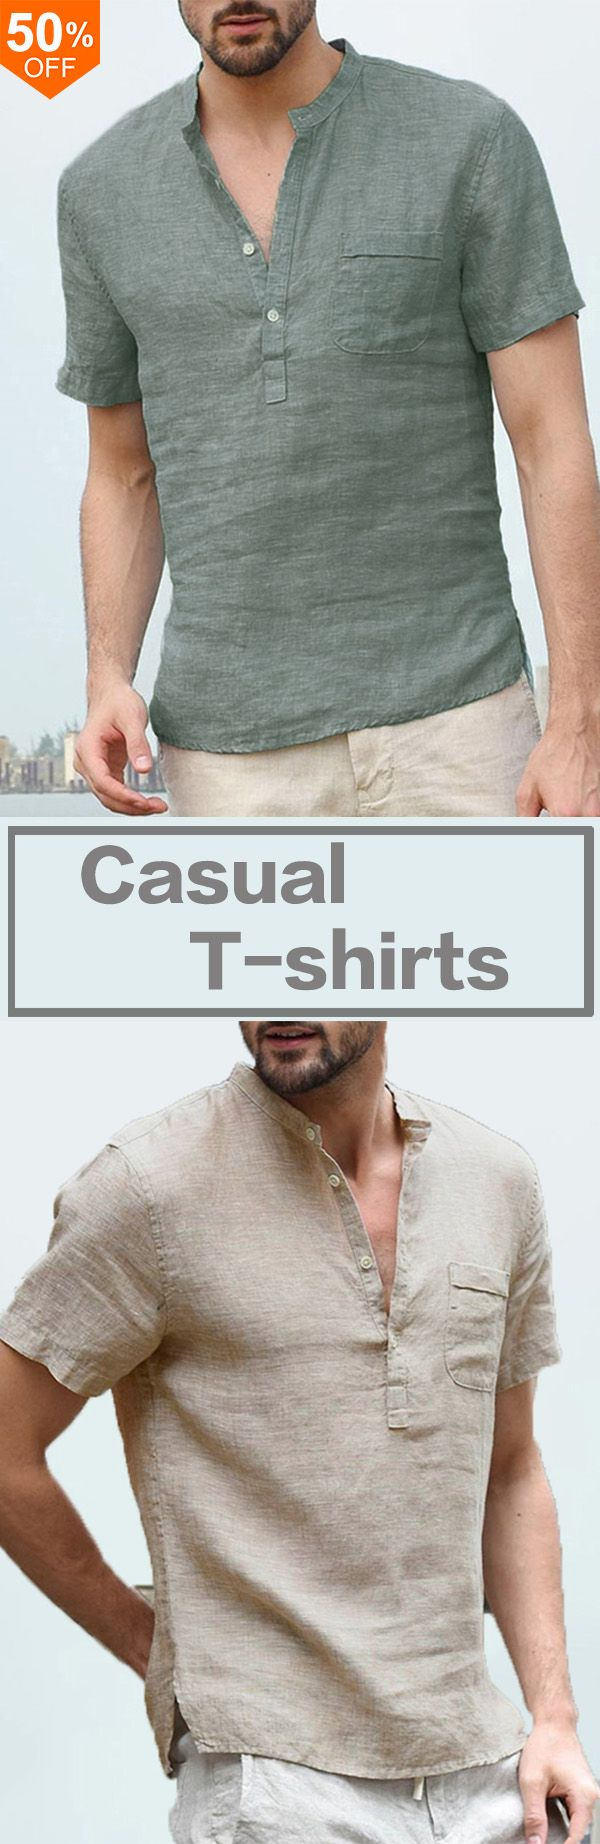 3a6a5d3ceaf5 Men s Button V-Neck Casual T-shirts Summer Short Sleeve Comfort Loose Solid  Color Tops Tees